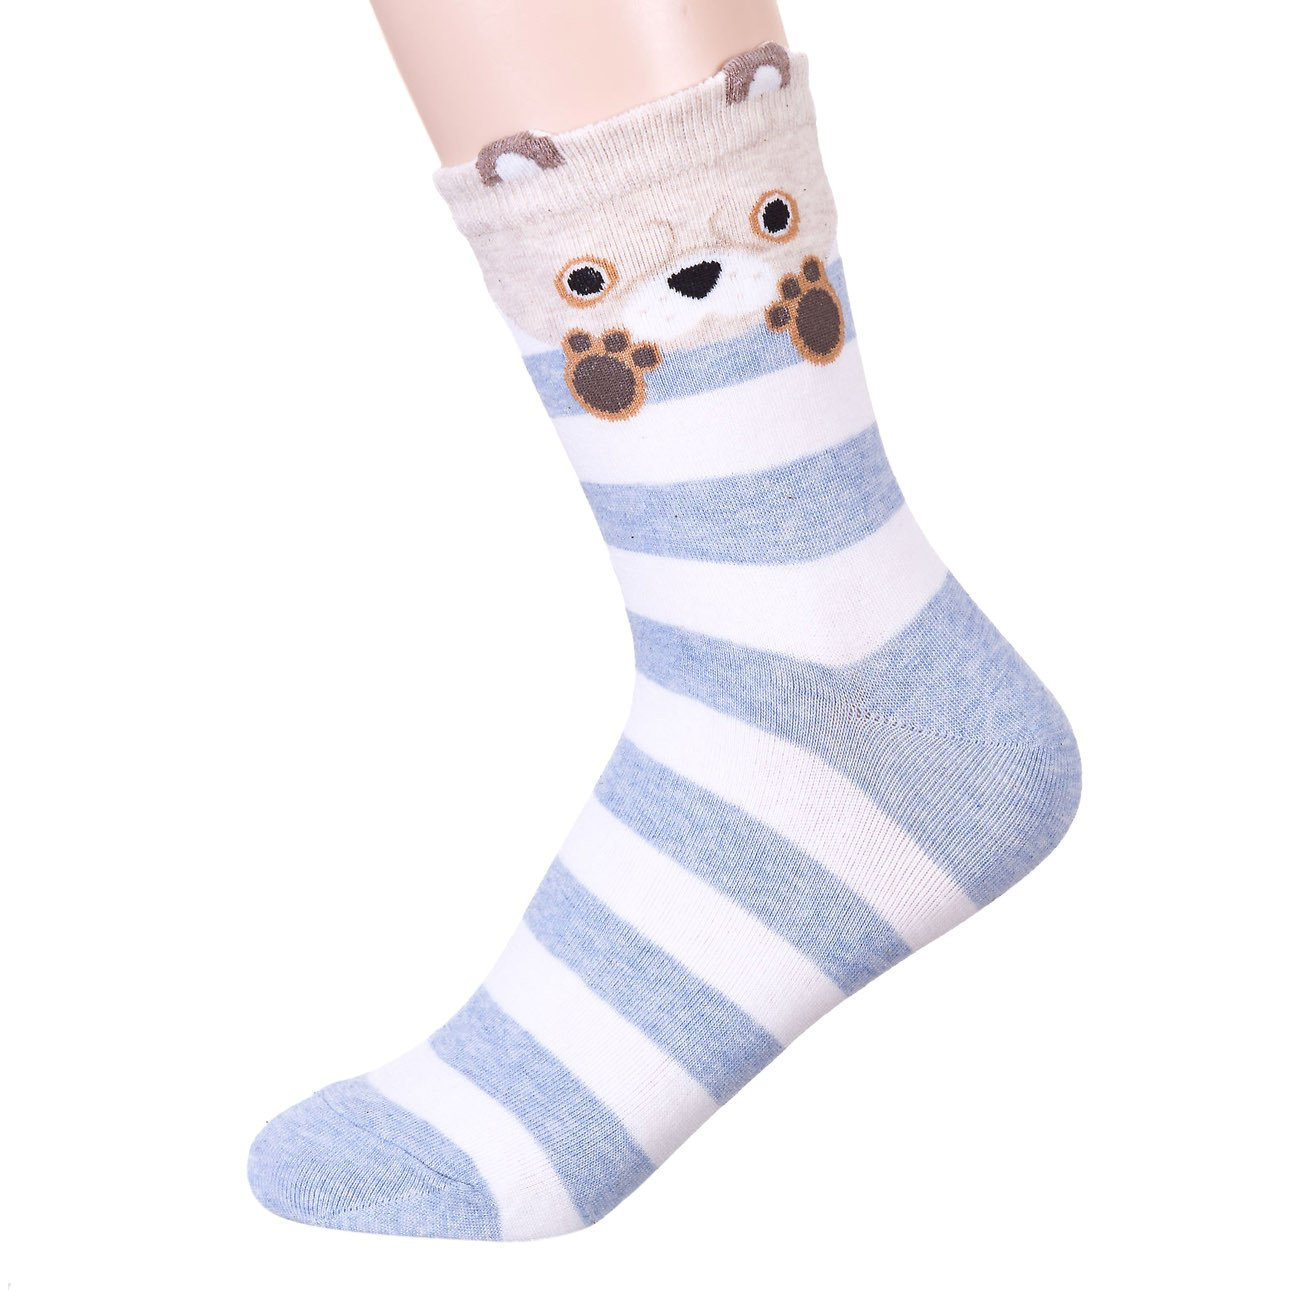 Stripe Bye Bye Animal Socks 5